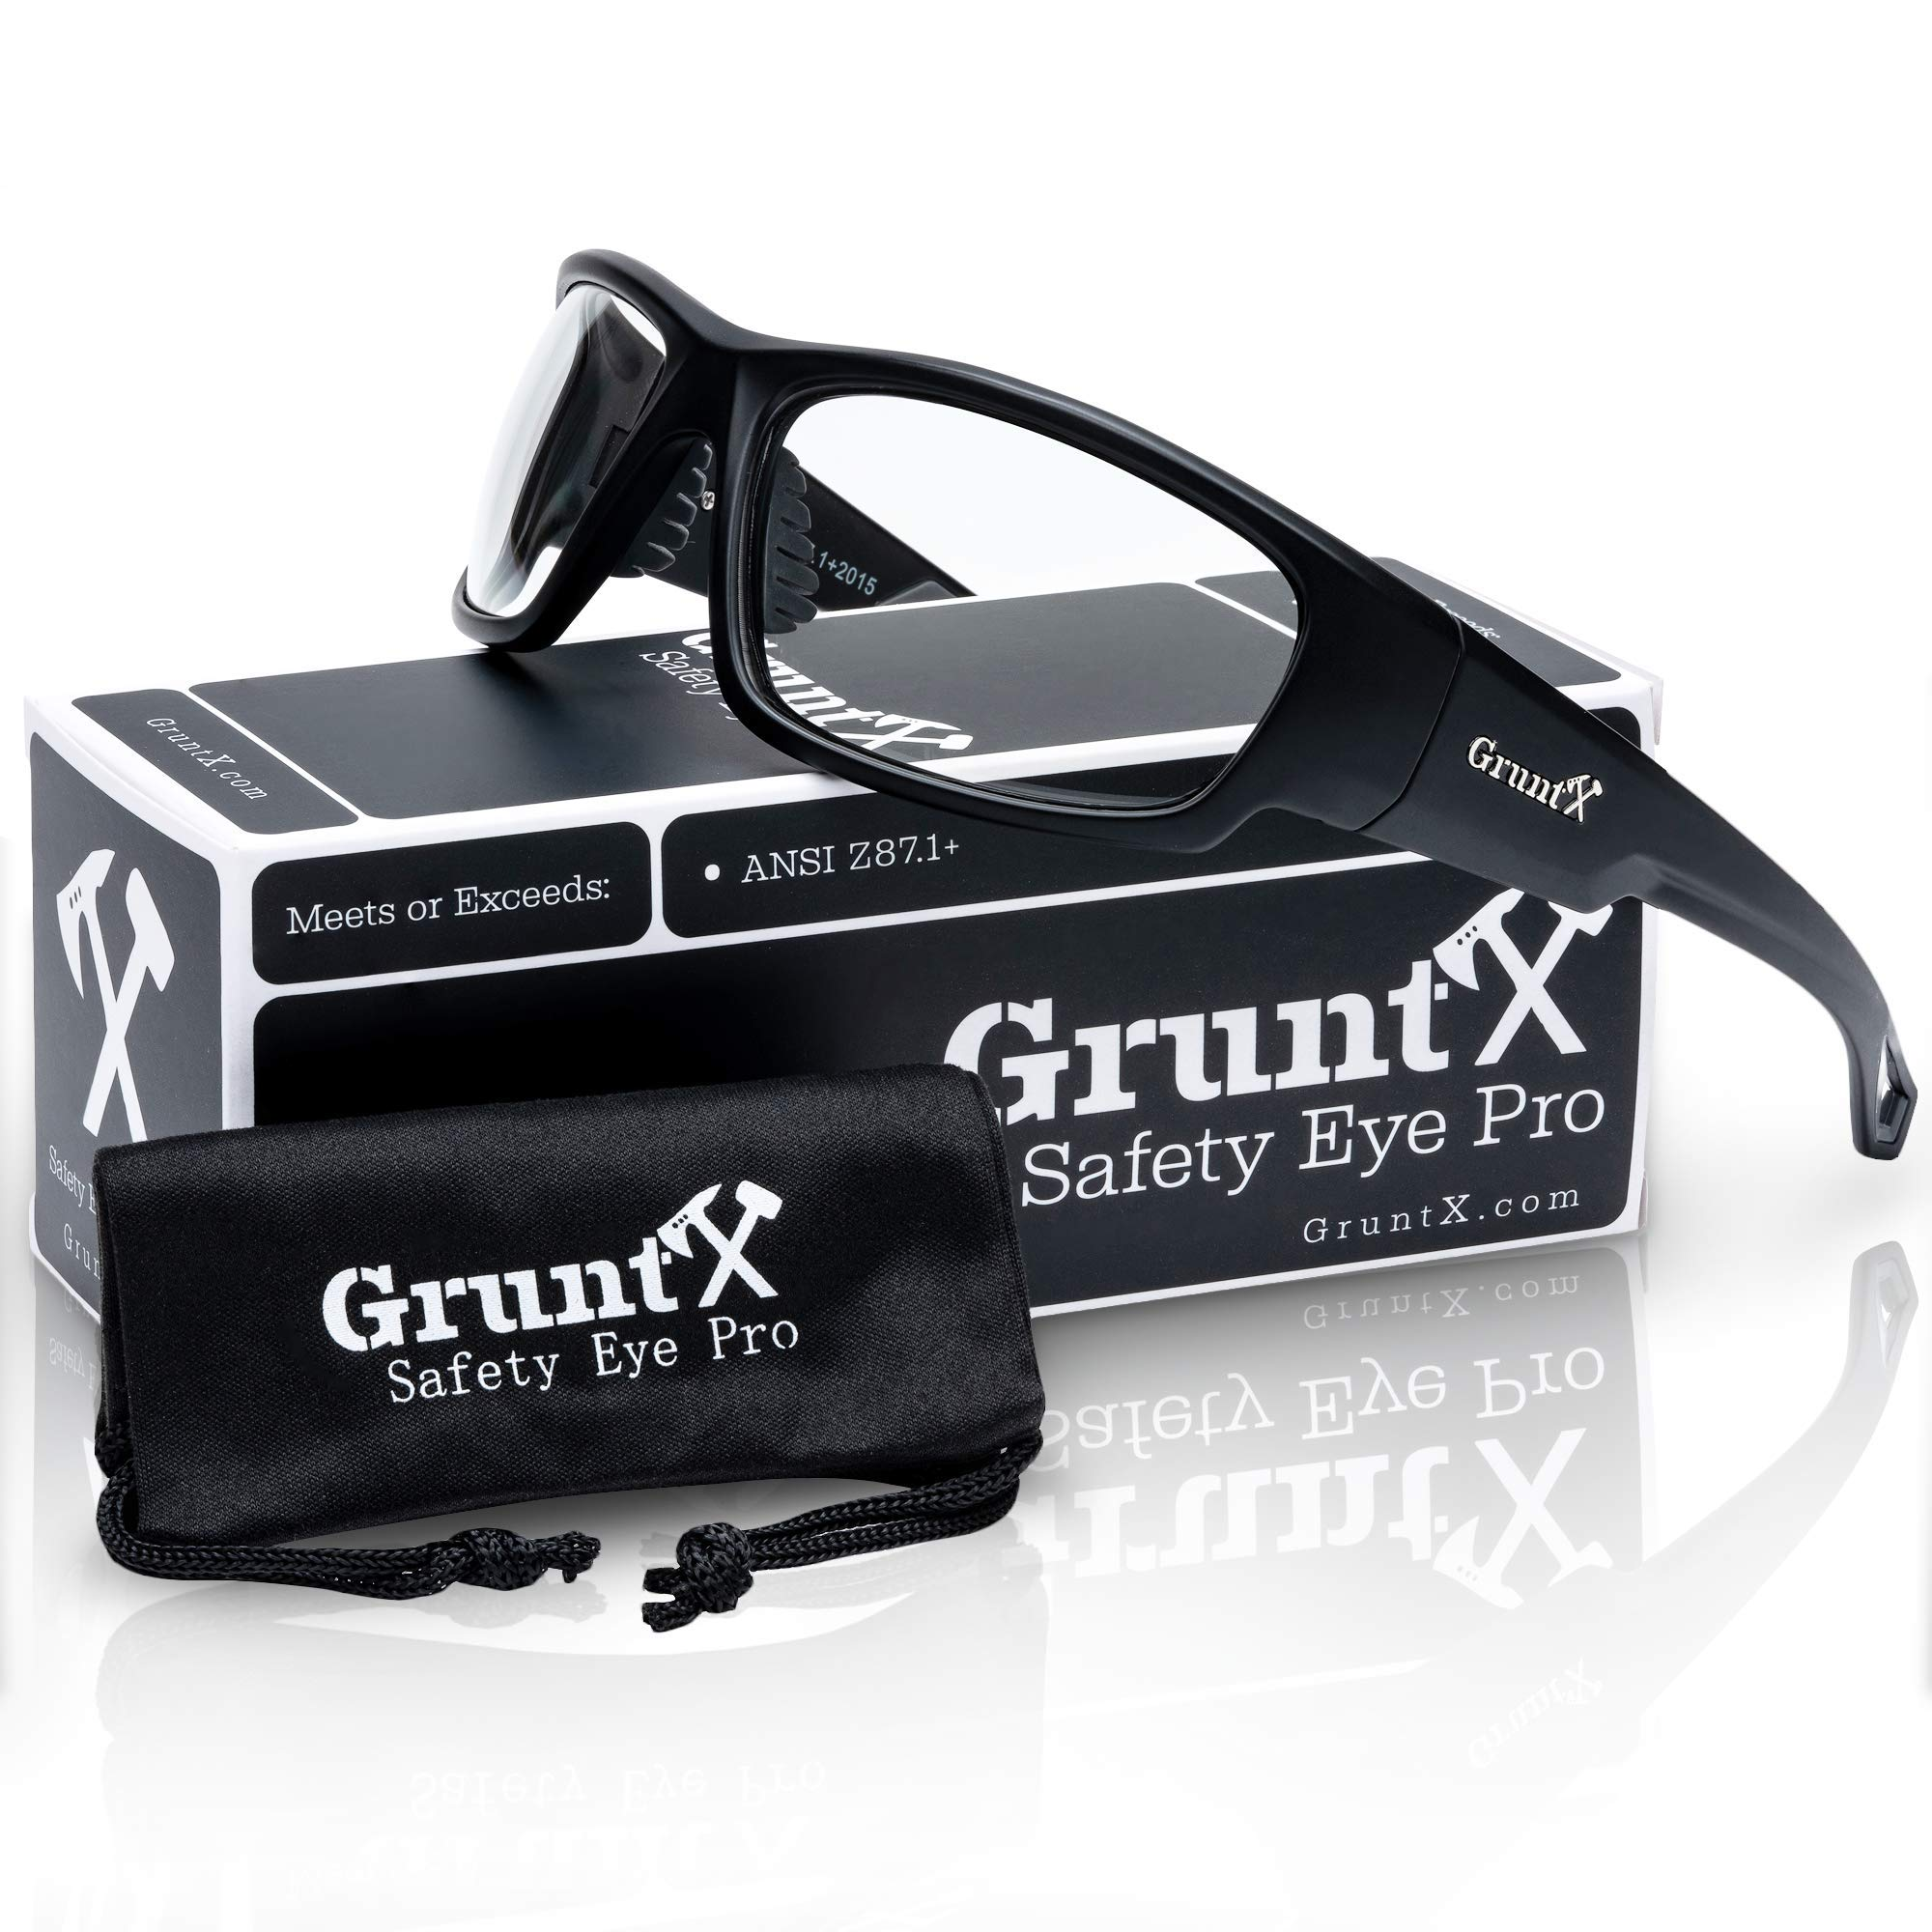 GruntX Ballistic Safety Glasses for Men - Clear - Meets ANSI z87.1+ - Anti Scratch and UV Protection - Perfect for: Shooting, Construction, and Outdoor Sports by GruntX